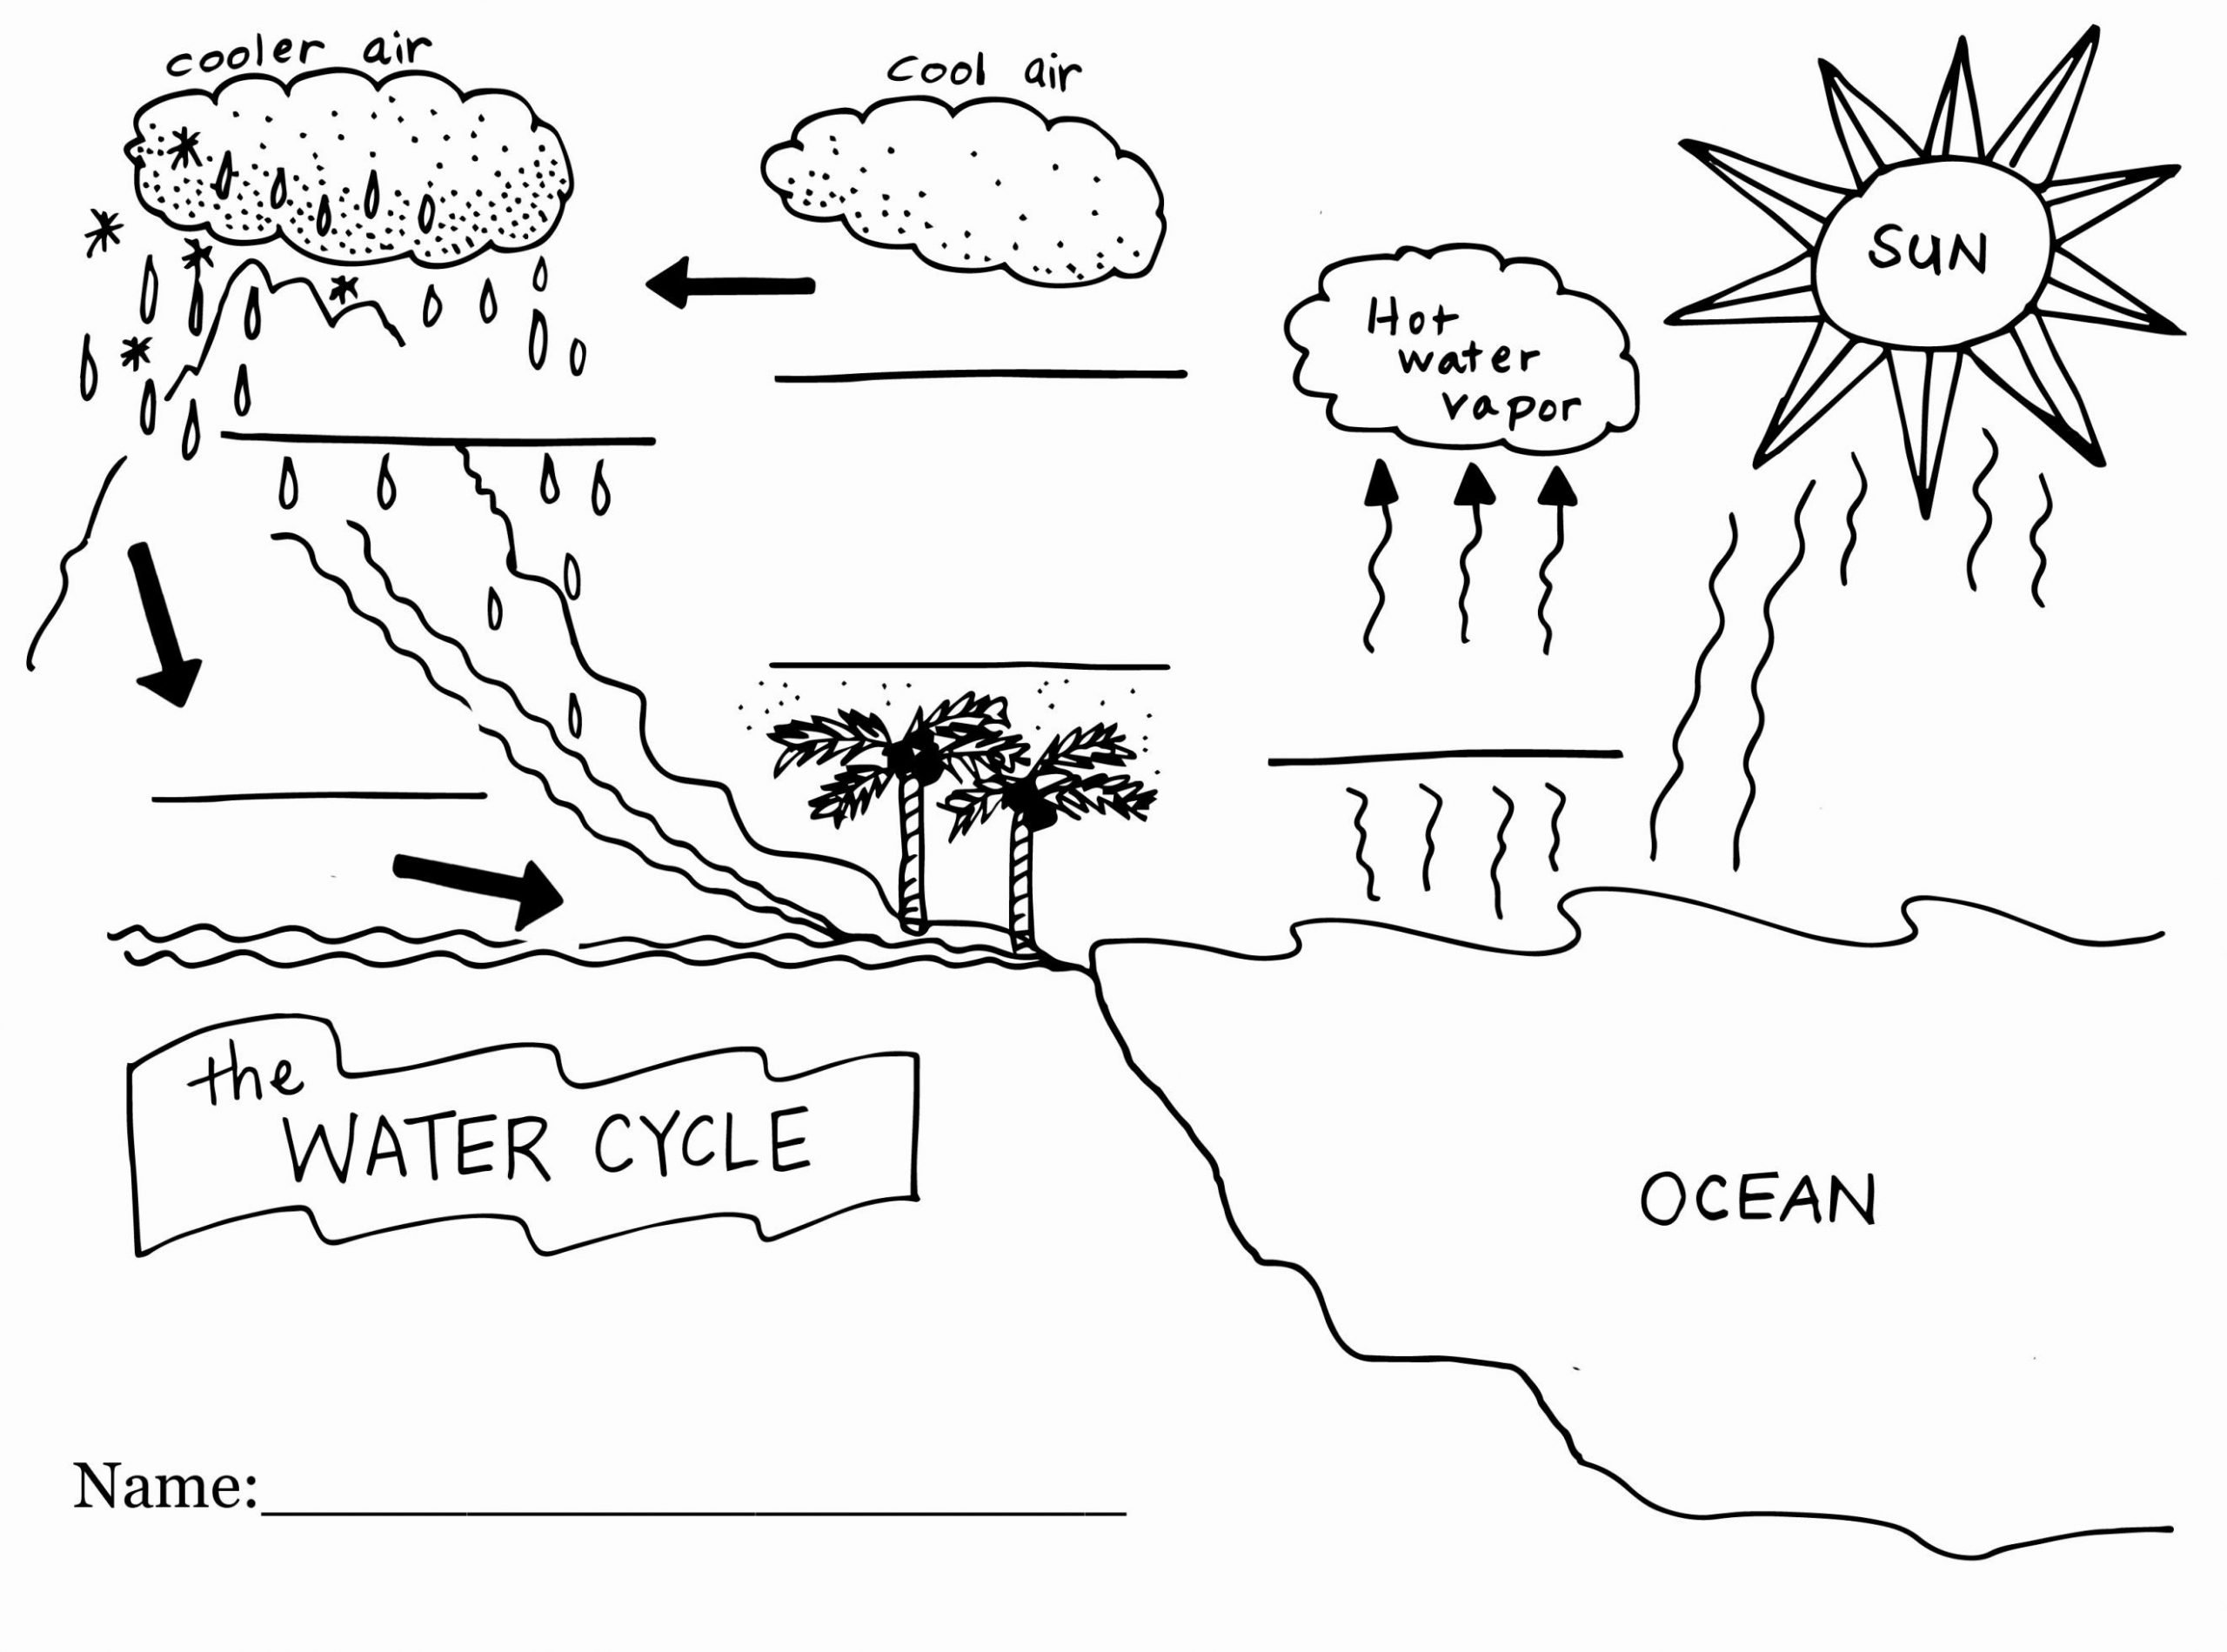 Water Cycle Kindergarten Worksheet Best Water Cycle Fill In the Blank Worksheet